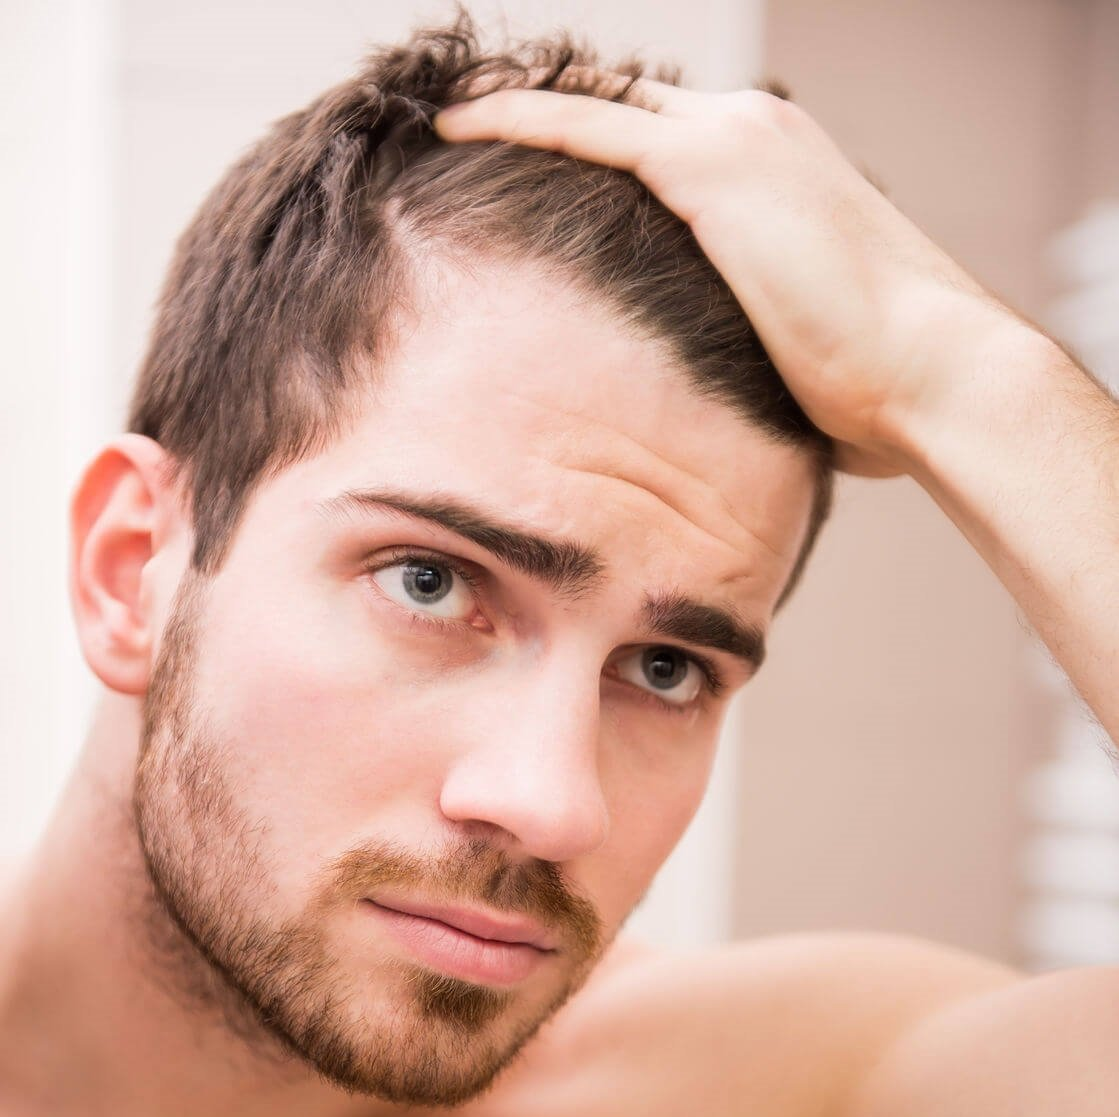 Jonsson Protein hair loss in men